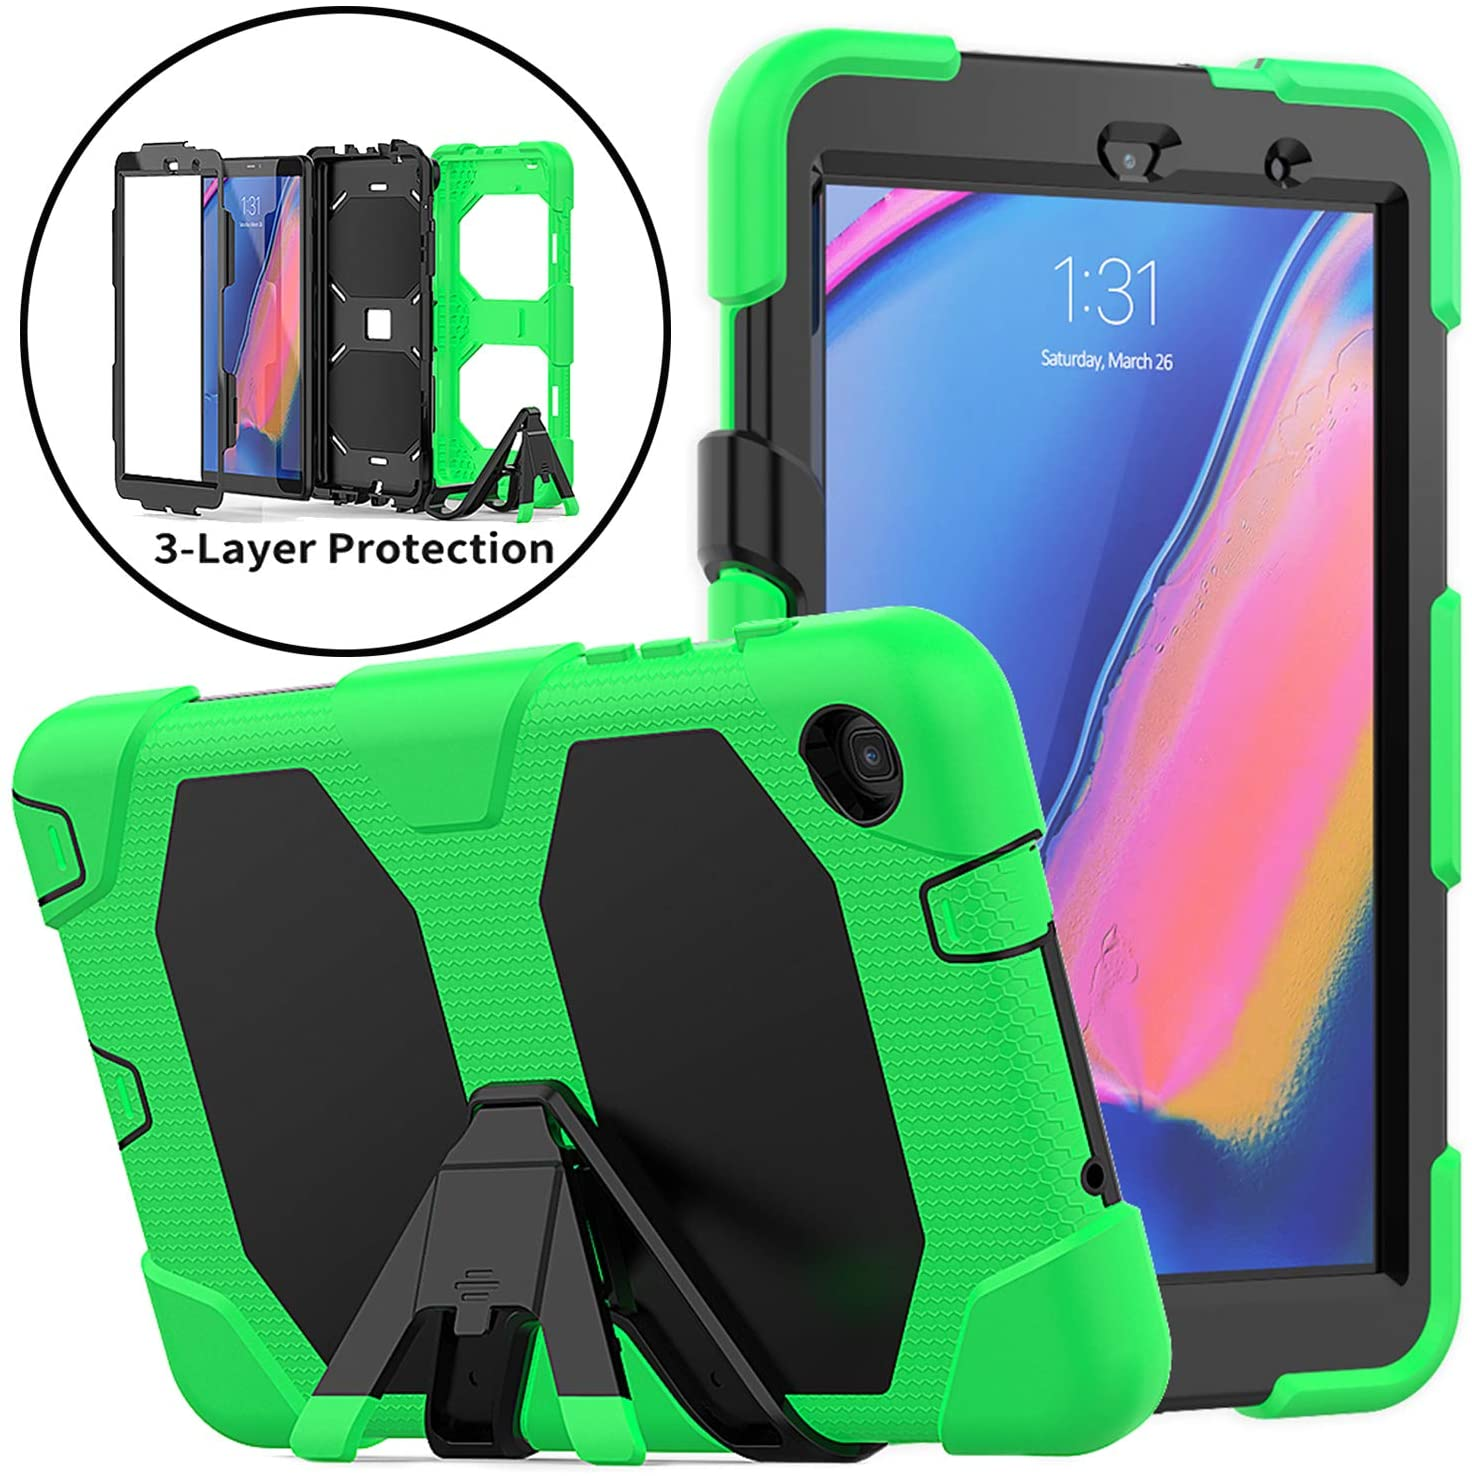 Neepanda Case for Galaxy Tab A with S Pen 8.0 2019, Full-Body Rugged Heavy Duty Case with Built-in Screen Protector for Samsung Galaxy Tab A with S Pen 8.0 Release Tablet SM-P200/P205, Green